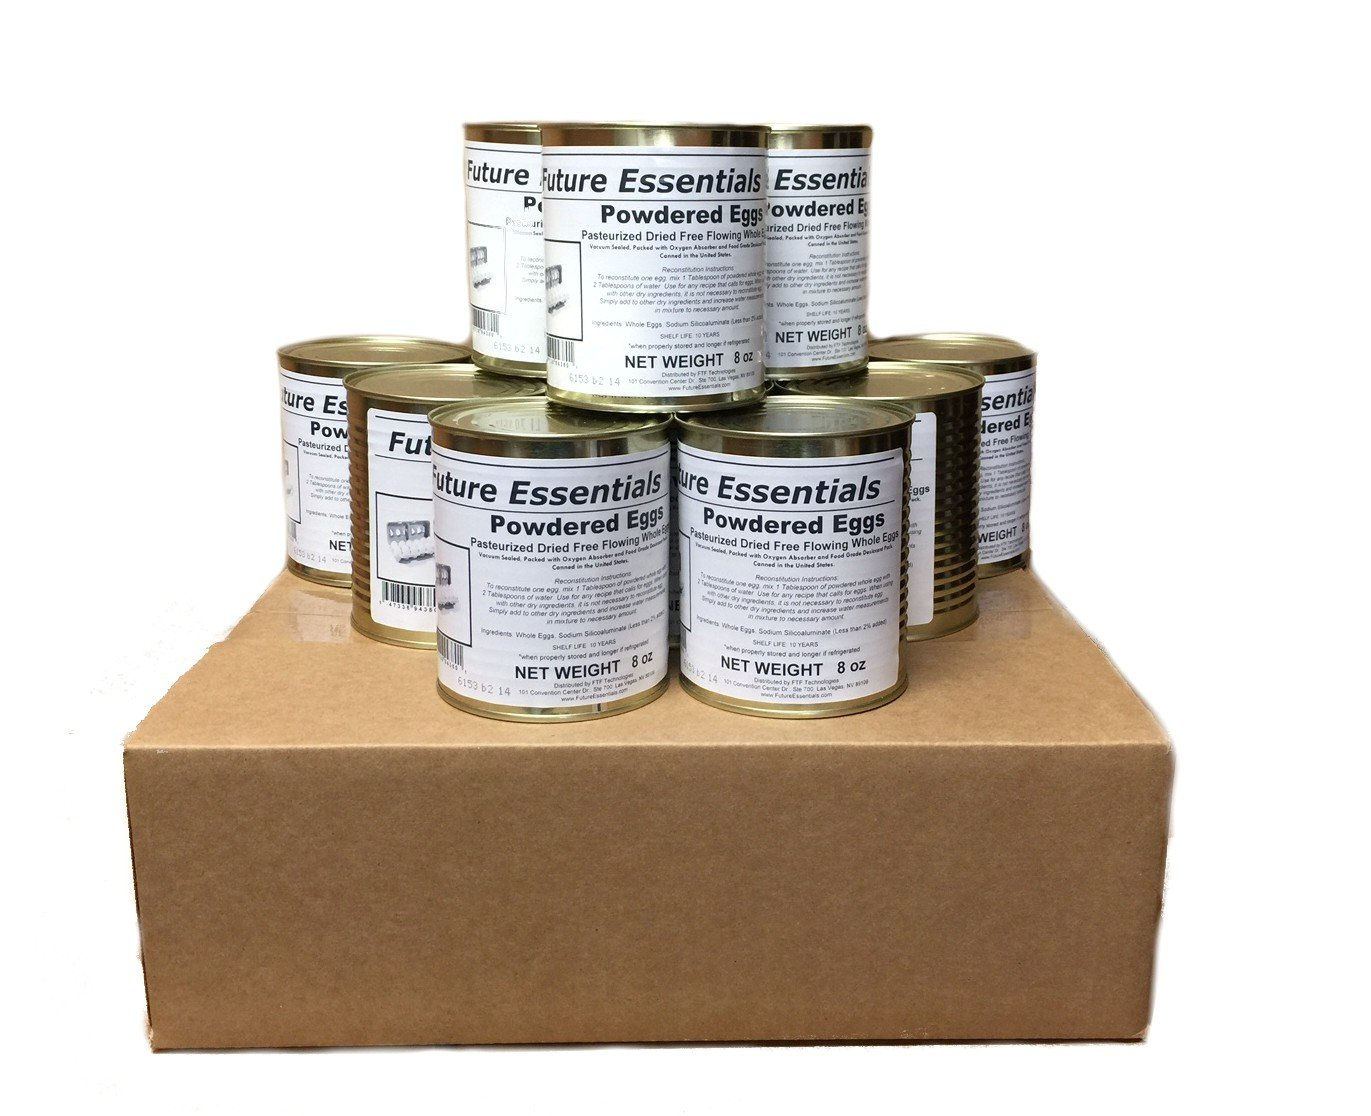 Future Essentials Canned Powdered Eggs (Full Case (12-Pack))